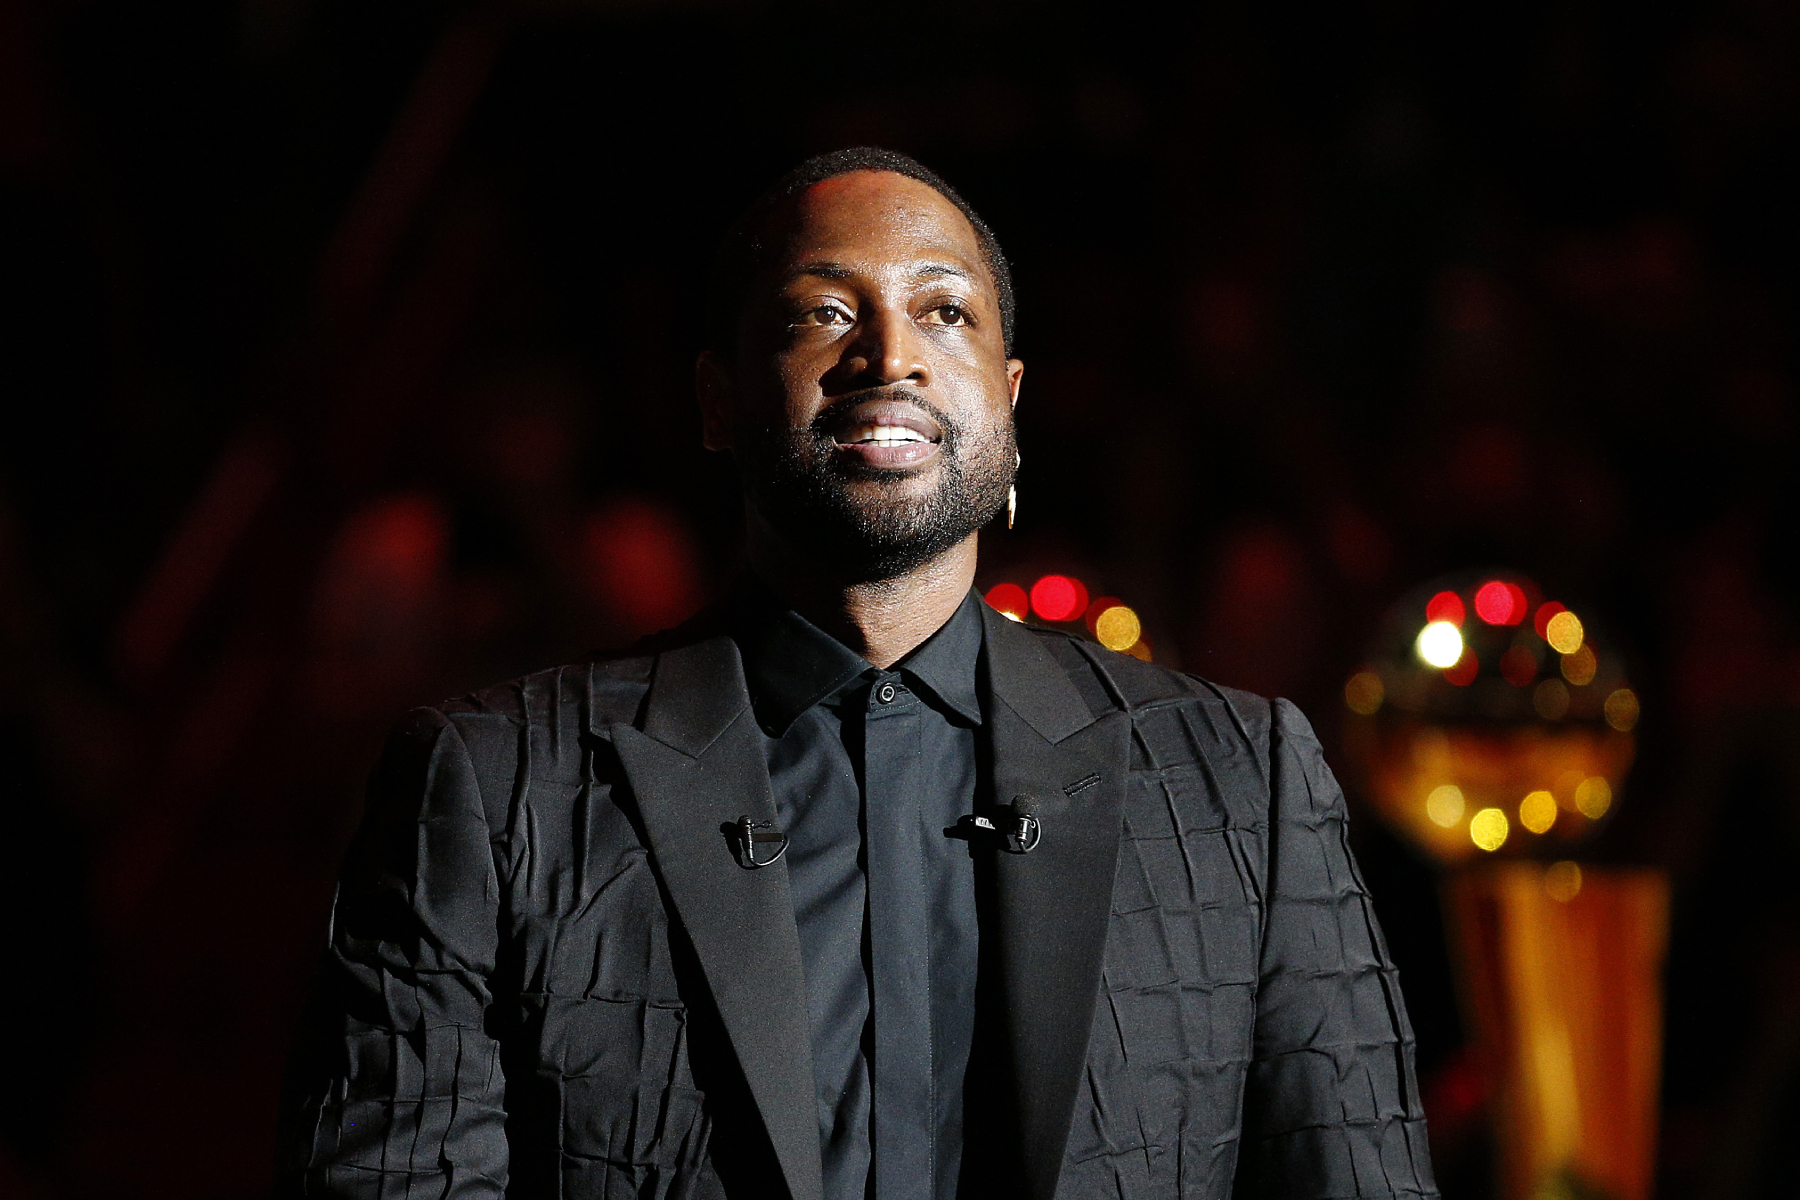 The Miami Heat are in the NBA Finals. Heat legend Dwyane Wade's endorsement has been proven right during the Finals too.